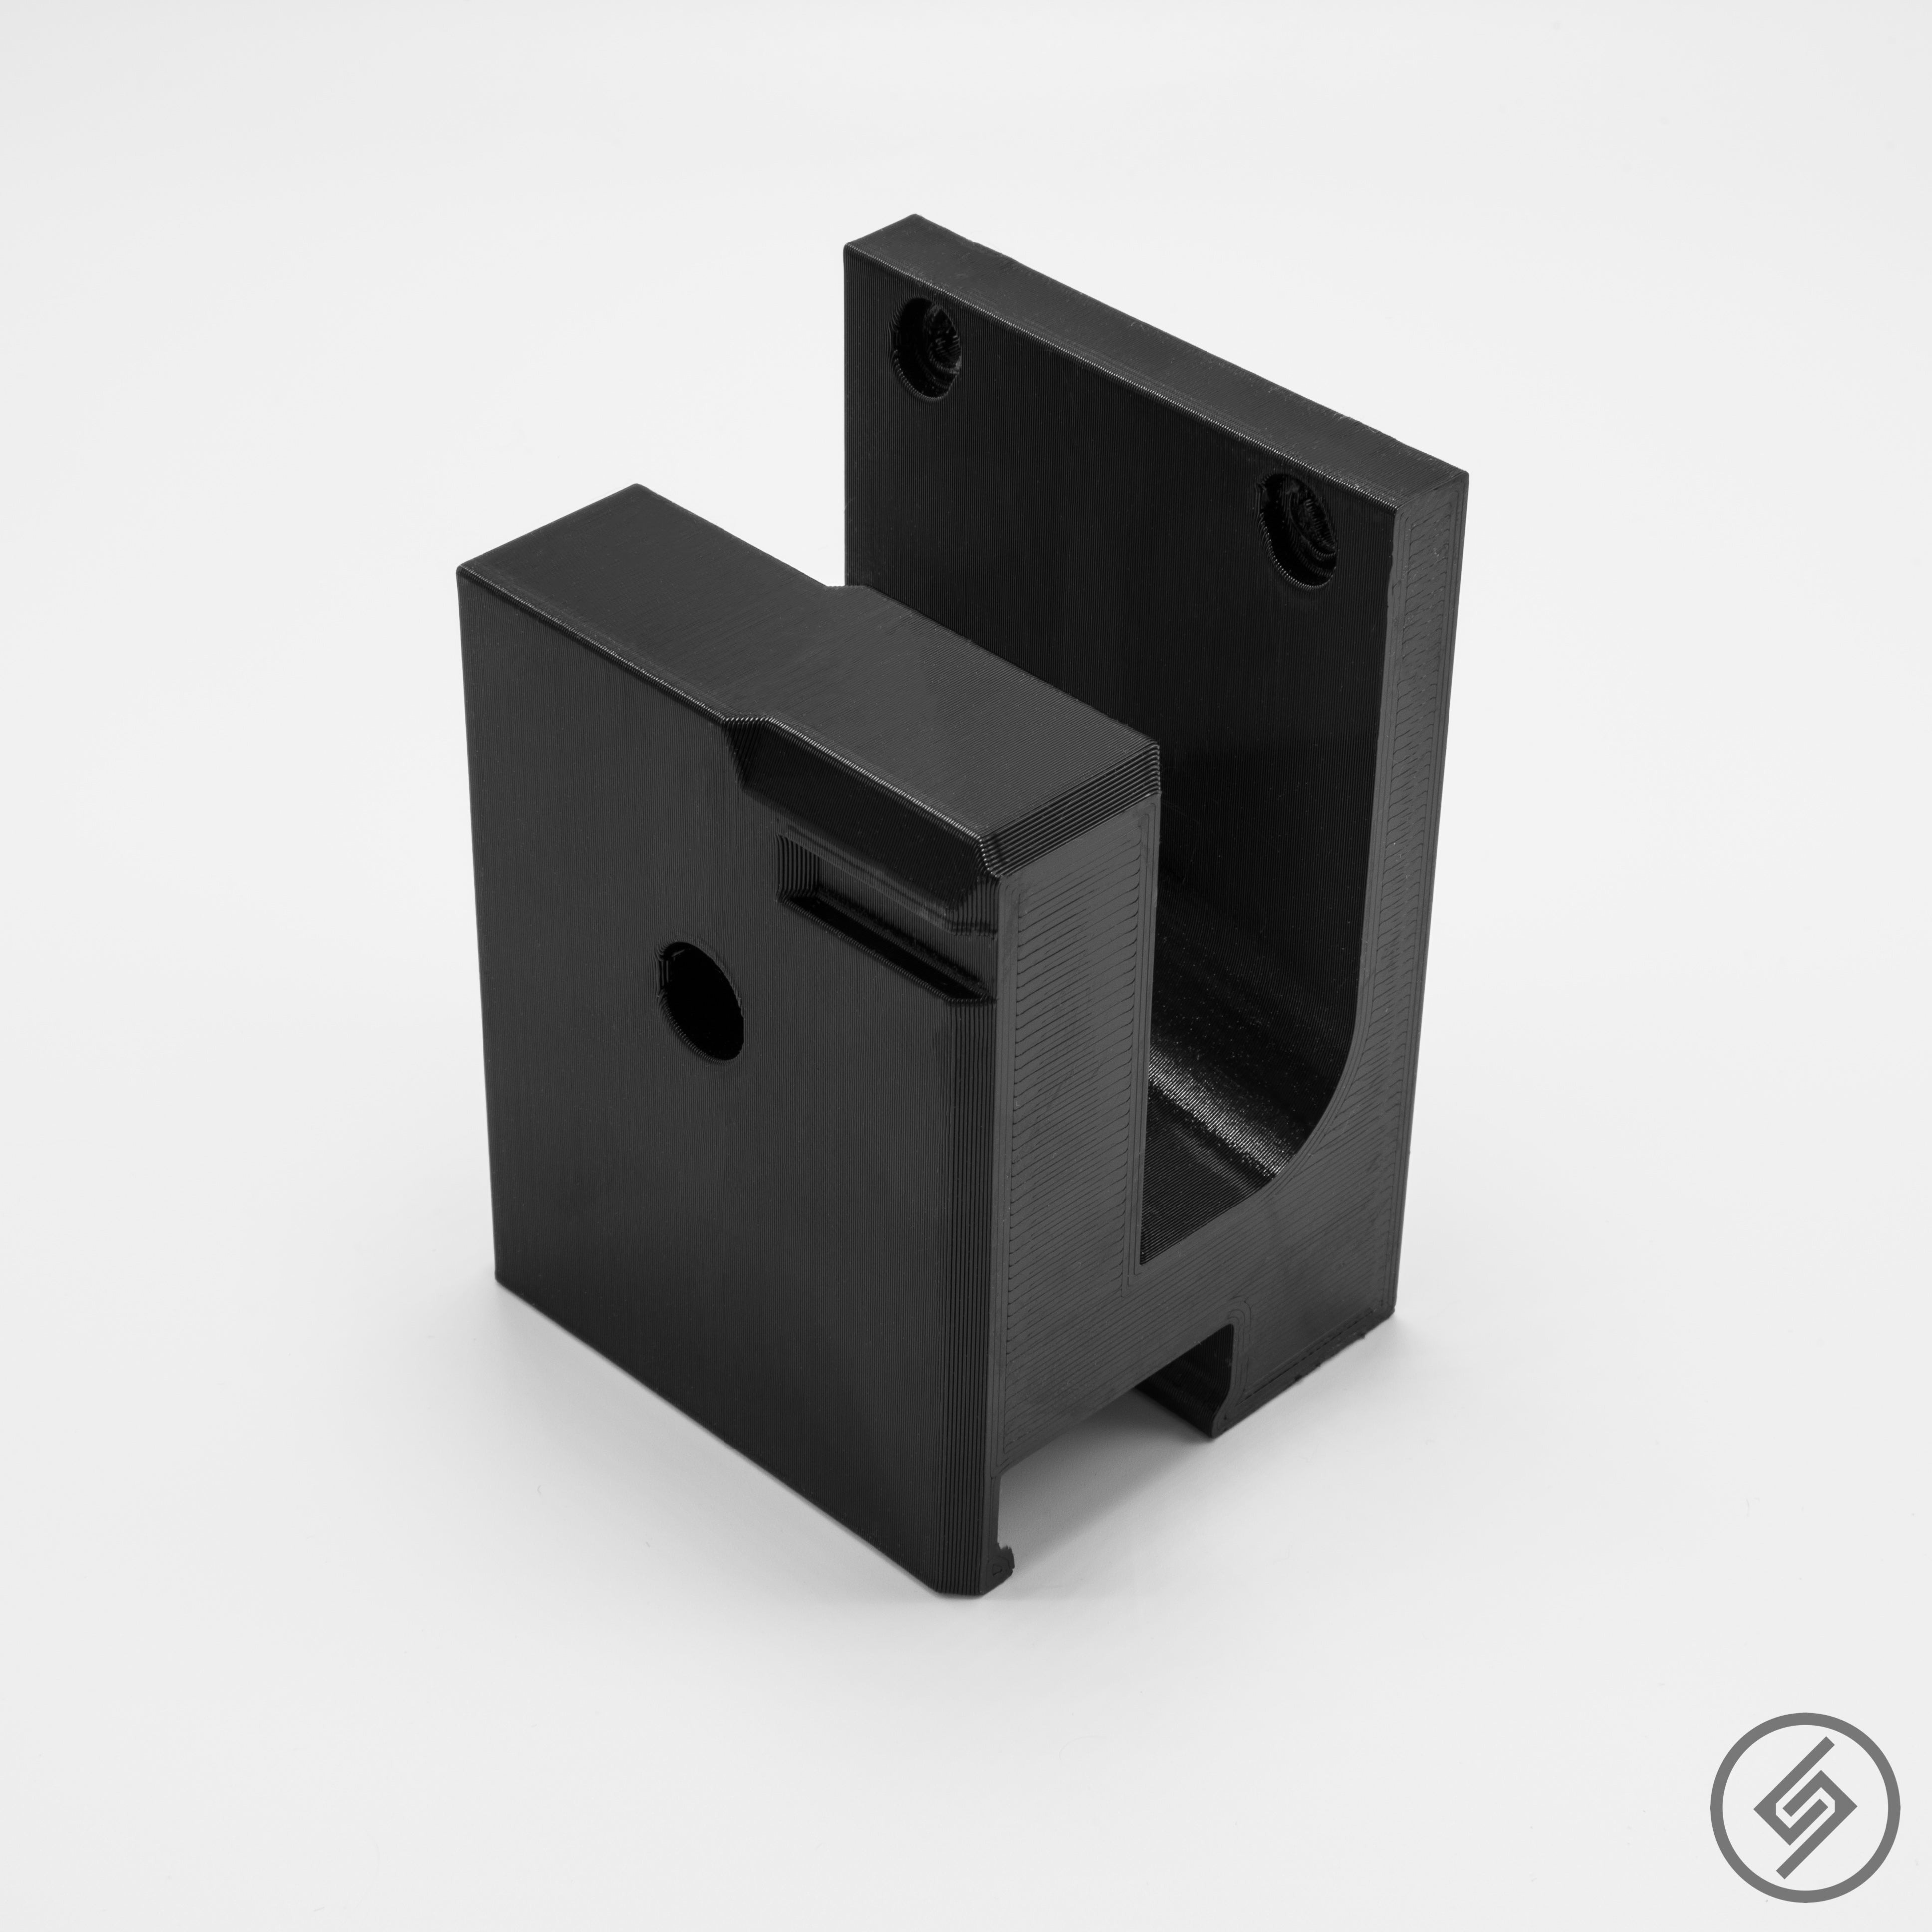 AR-10 + PMAG Wall Mount, Spartan Mounts, Product Photo 1